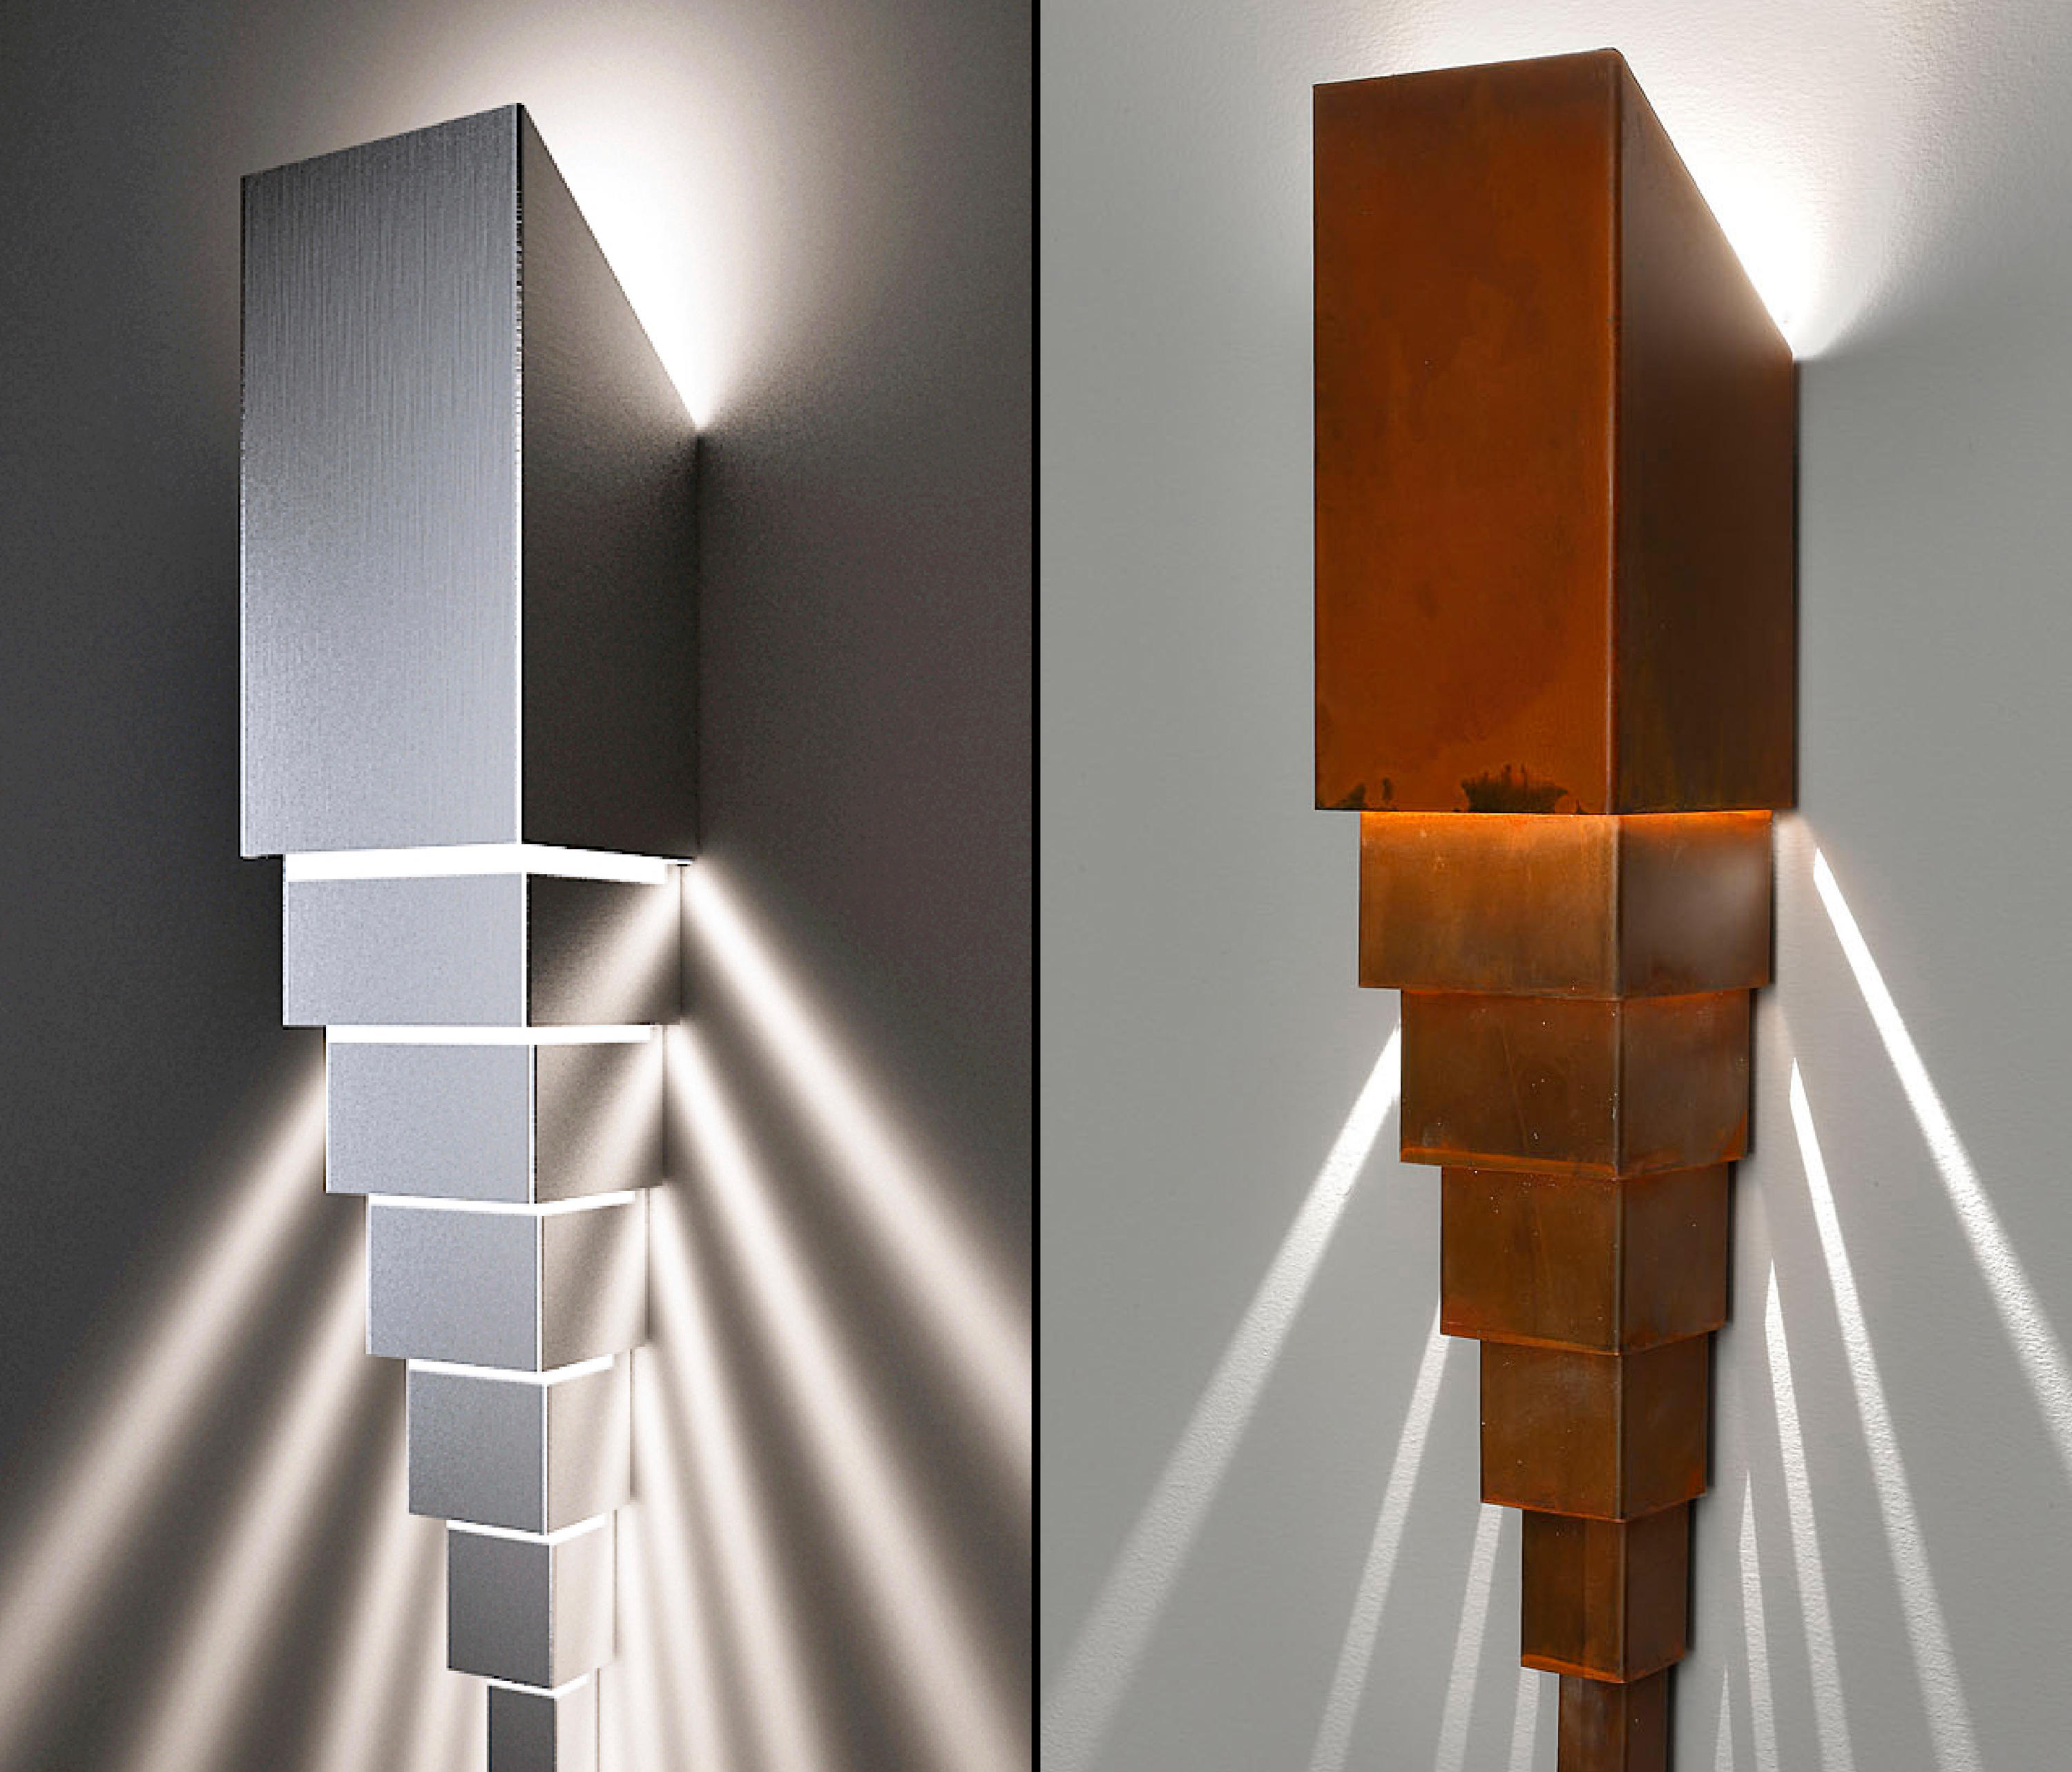 Torch wall lamp wall lights from la rfrence architonic torch wall lamp by la rfrence wall lights aloadofball Images